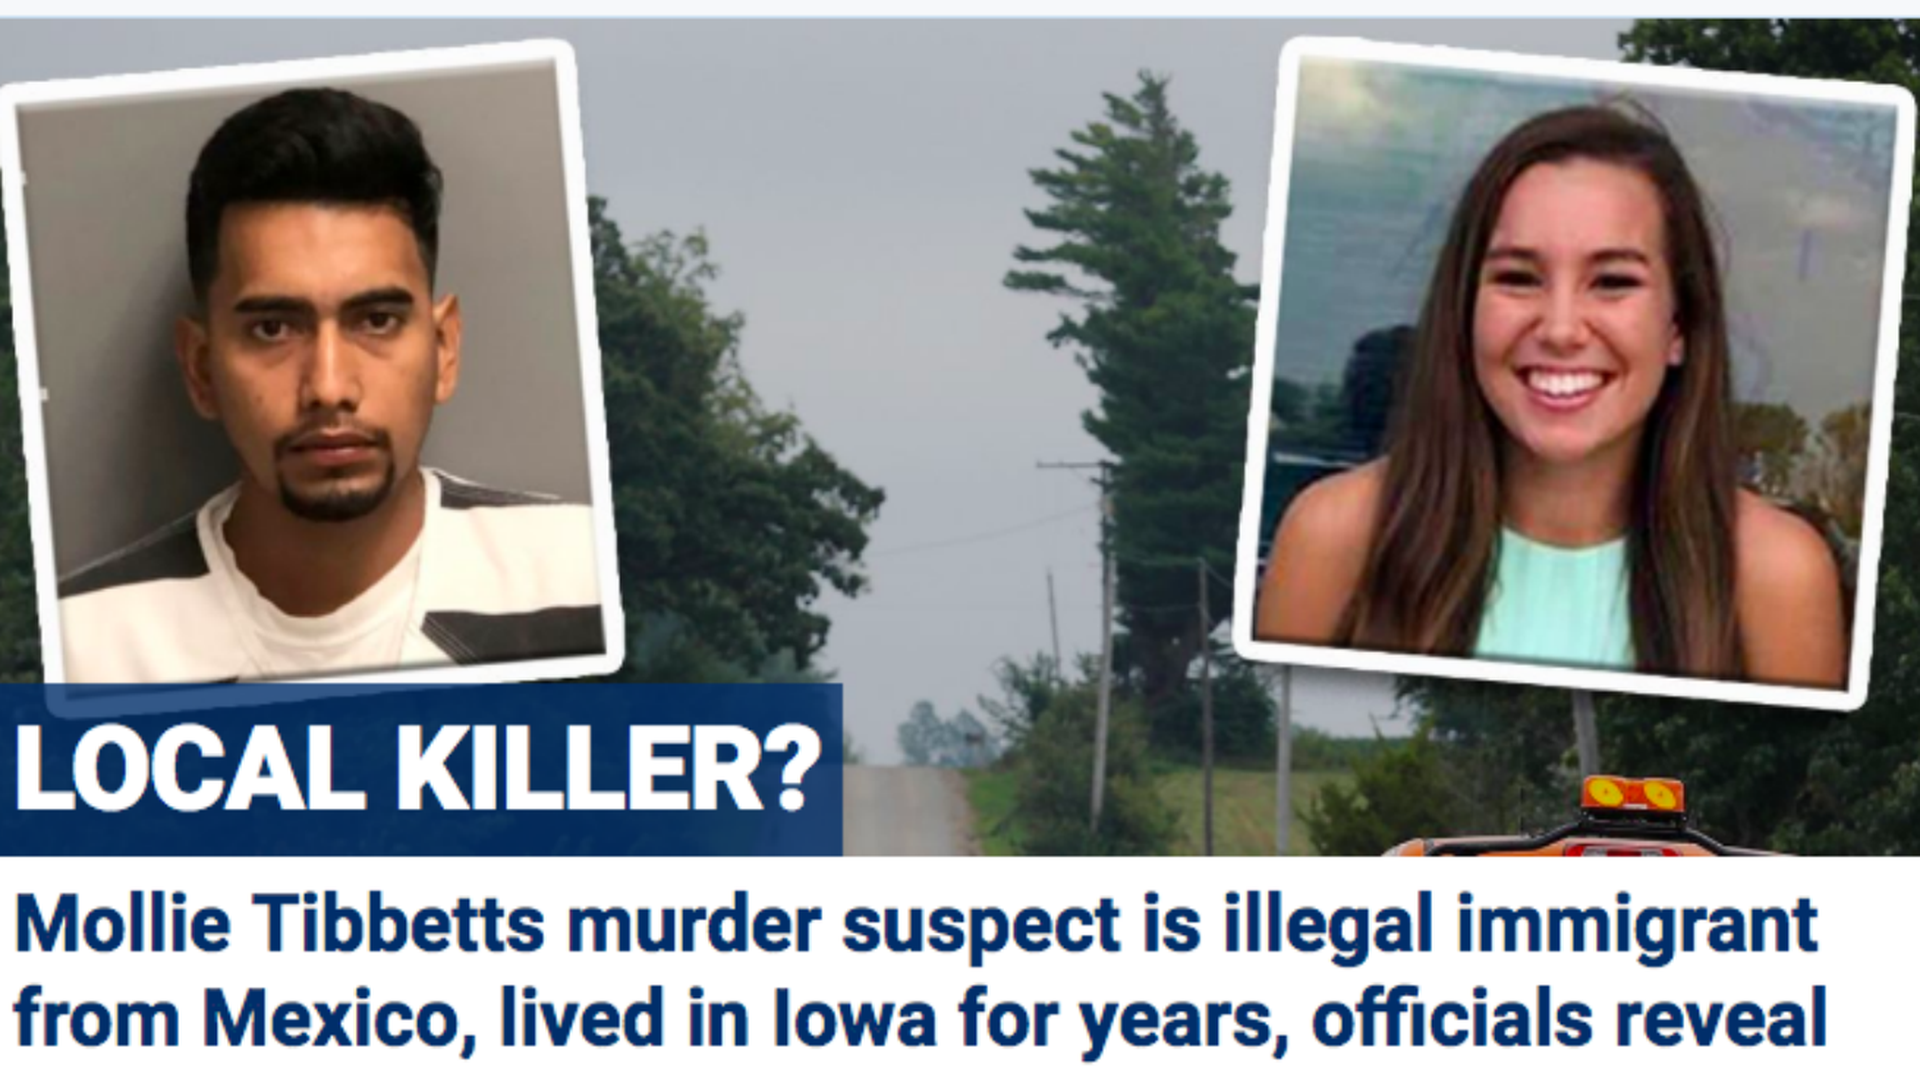 Mollie Tibbets and her alleged killer on Fox News